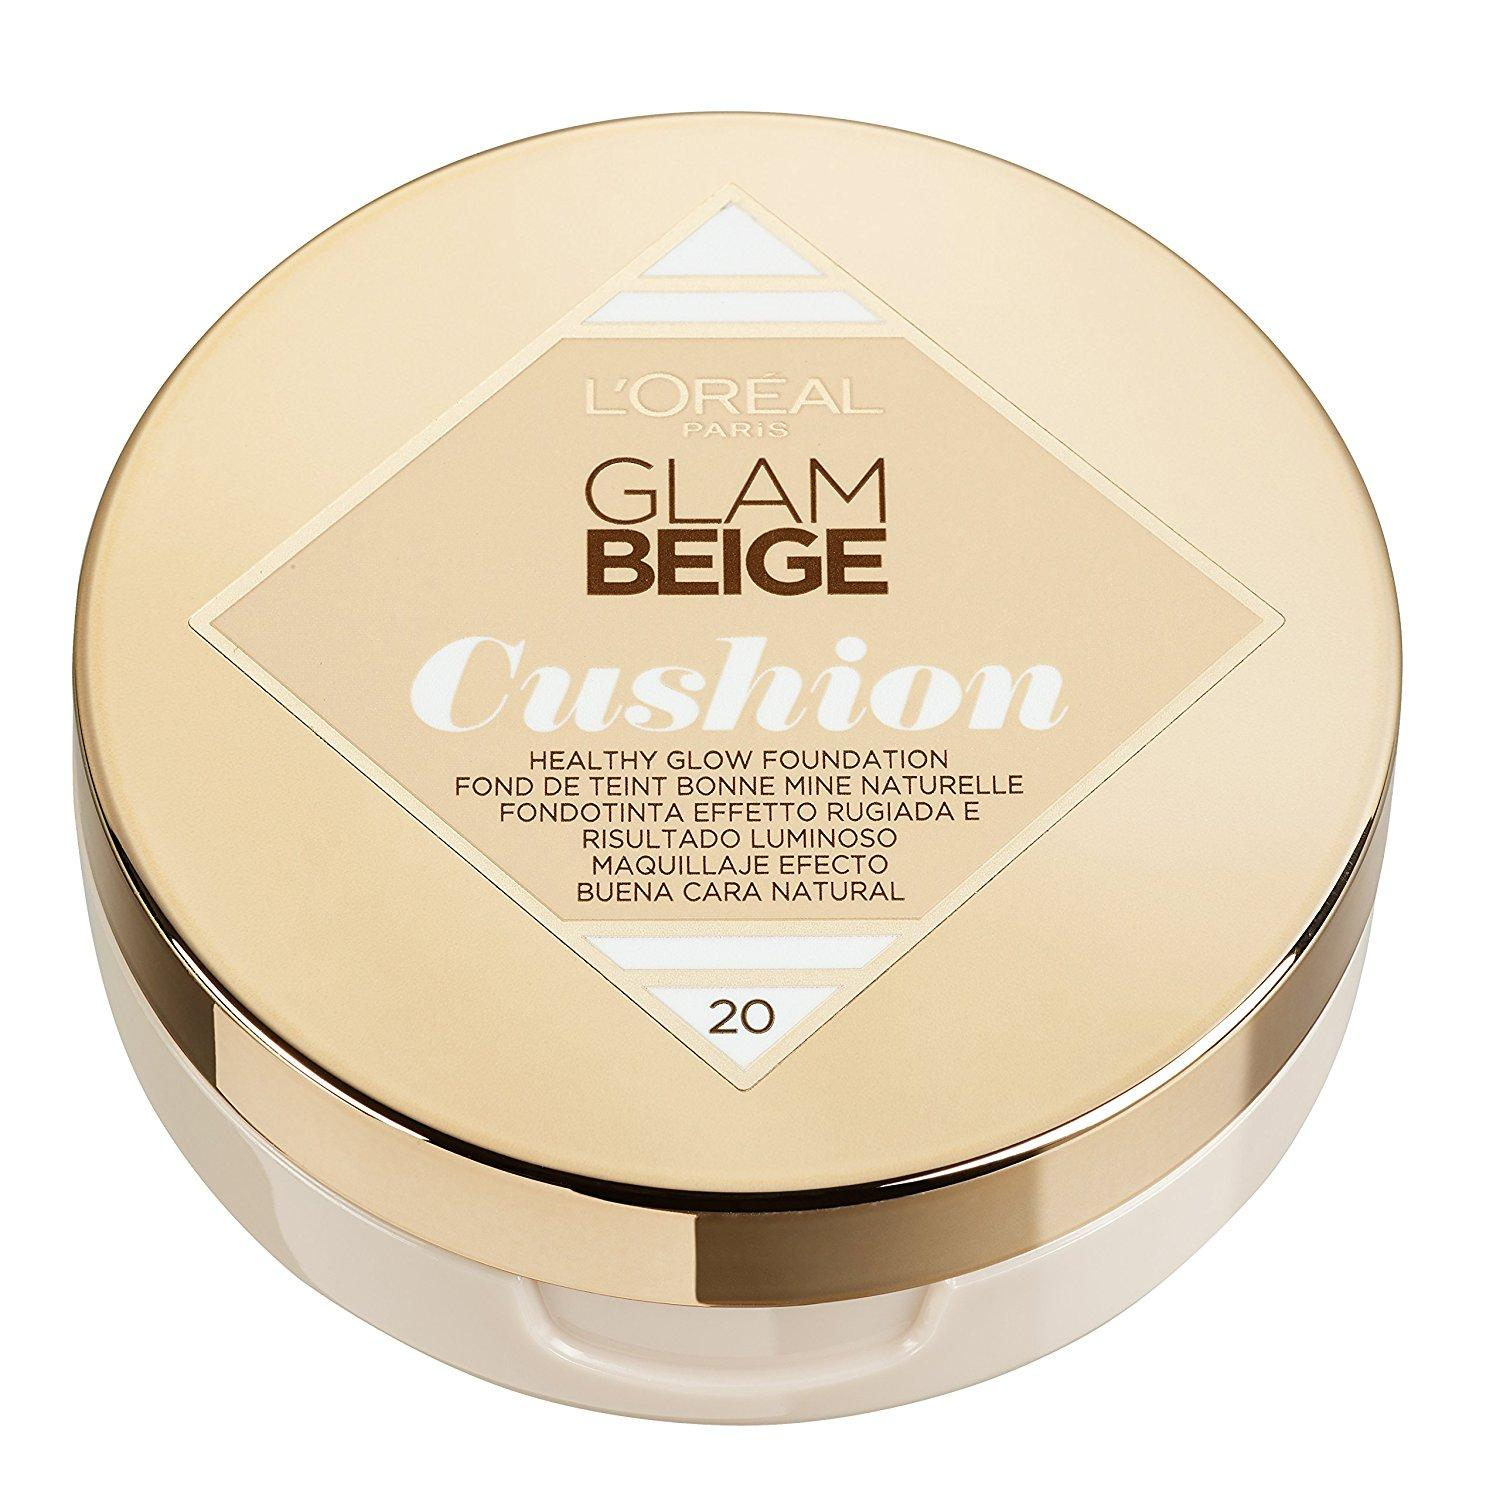 L'Oréal Paris Glam Beige Fondotinta Cushion Leggero e Luminoso, 20 Light